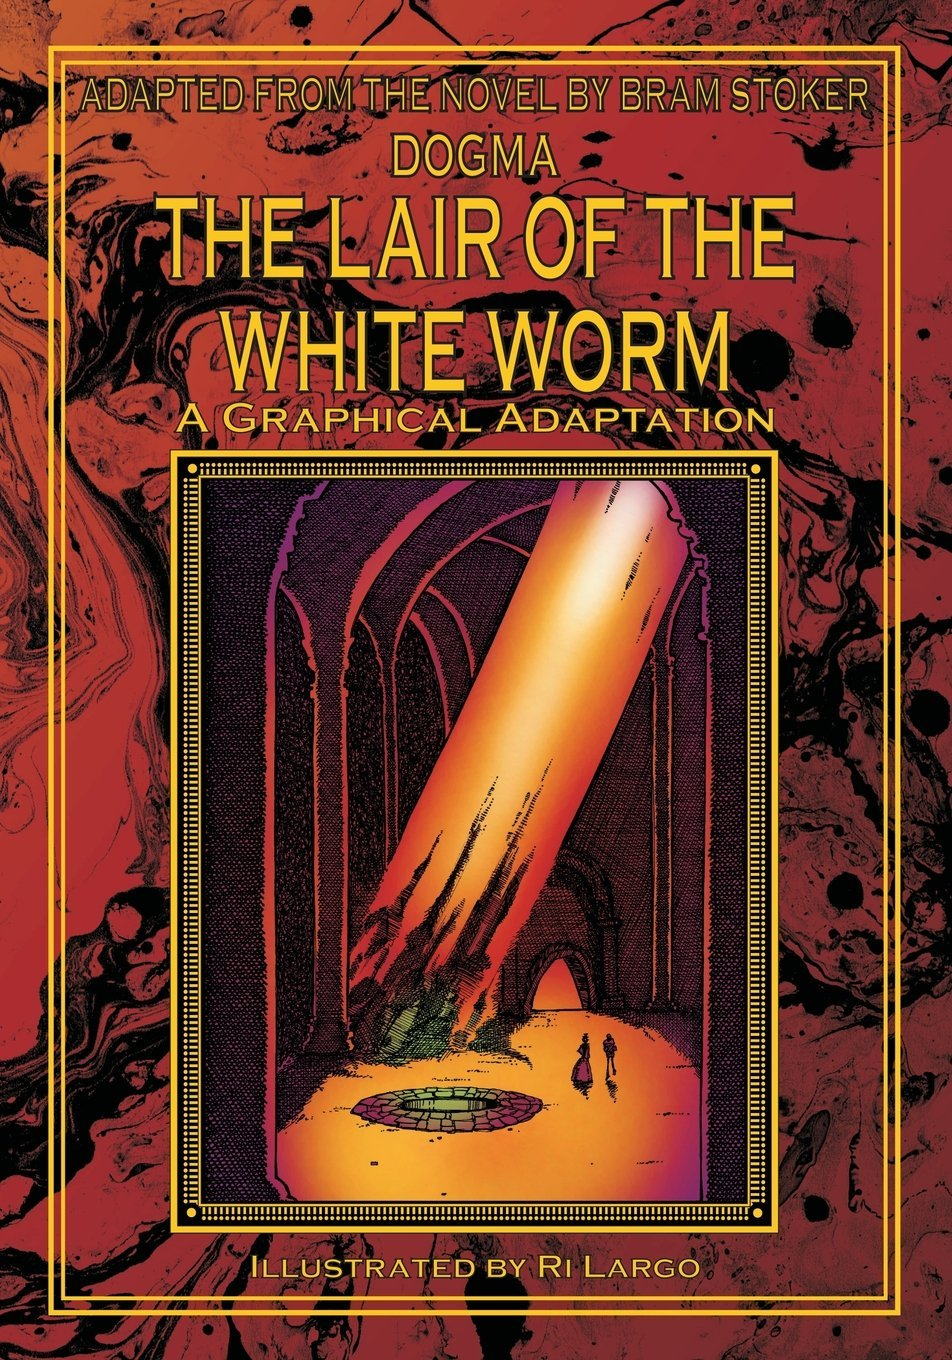 The Lair of the White Worm: A Graphical Adaptation